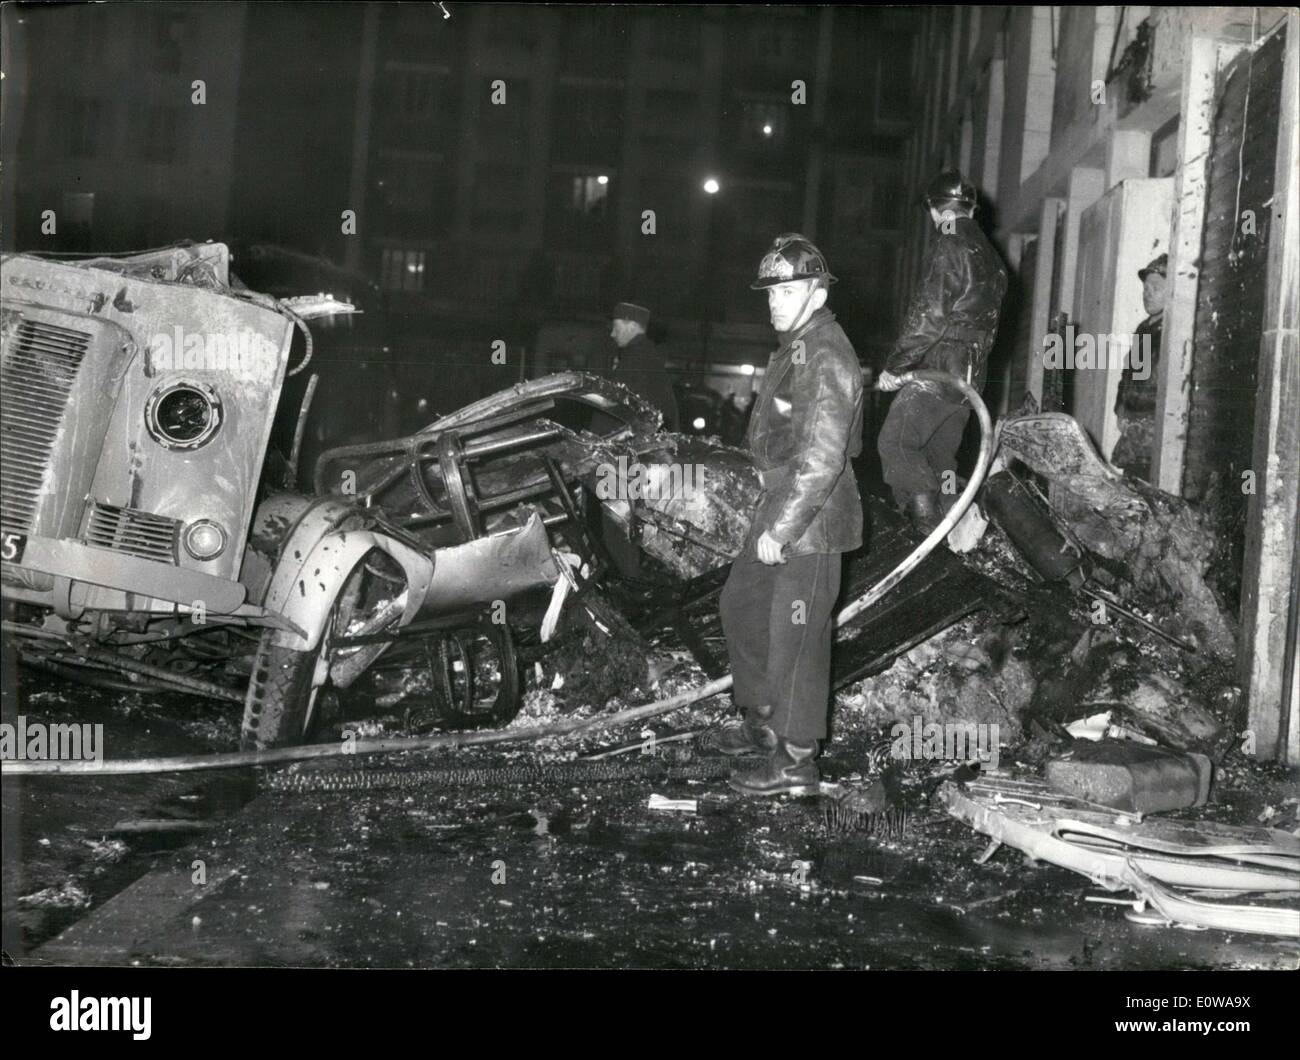 Mar. 06, 1962 - A van filled with explosives and munitions missed its target. The vehicle's occupants seem to belong to the O.A.S. (the Secret Armed Organization) - Stock Image